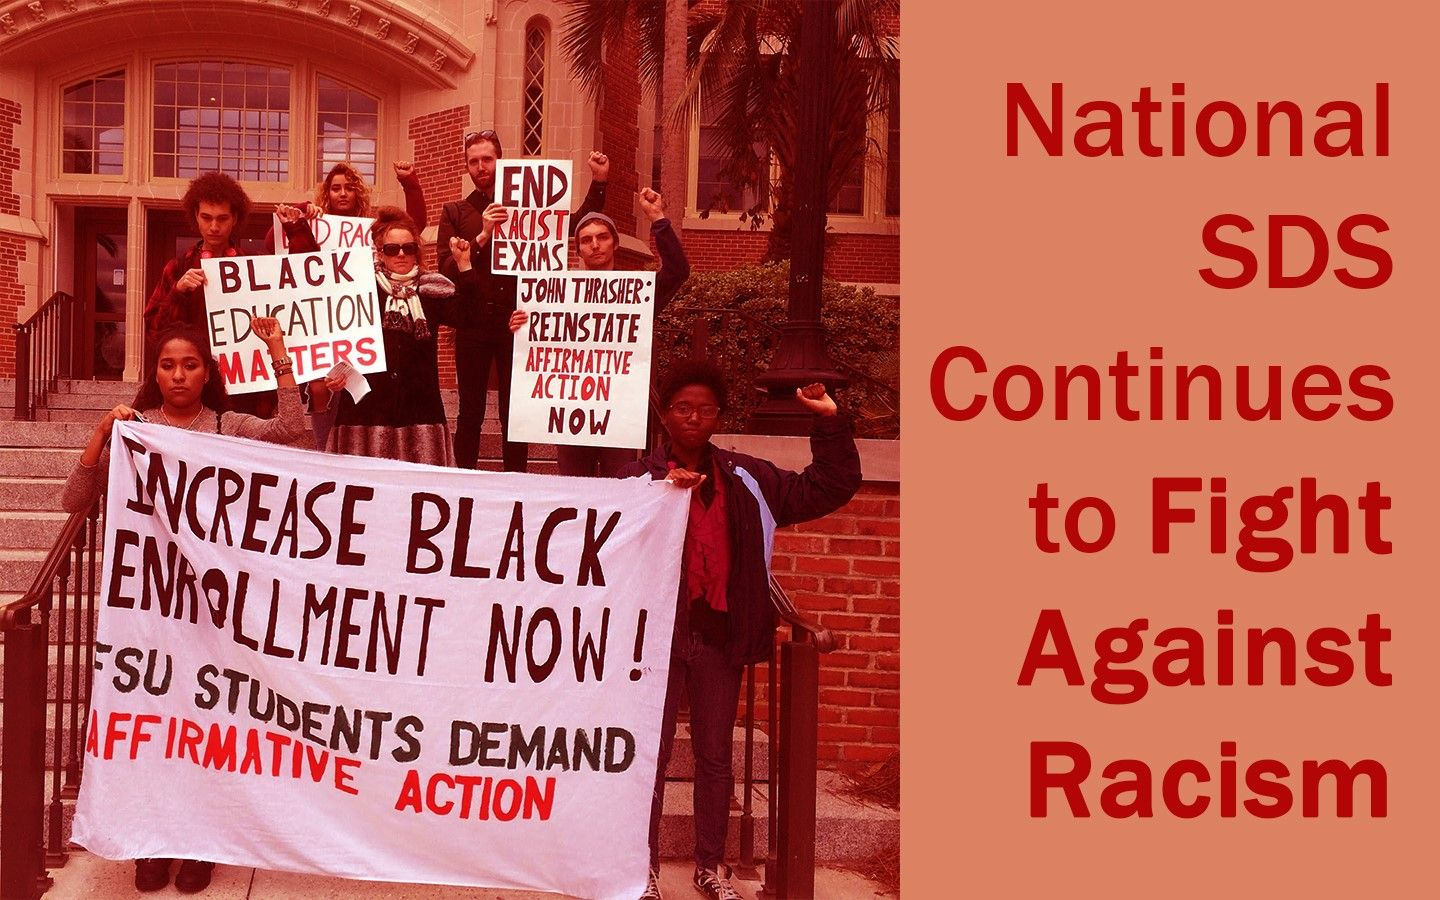 2019 Resolution: National SDS Continues to Fight Against Racism